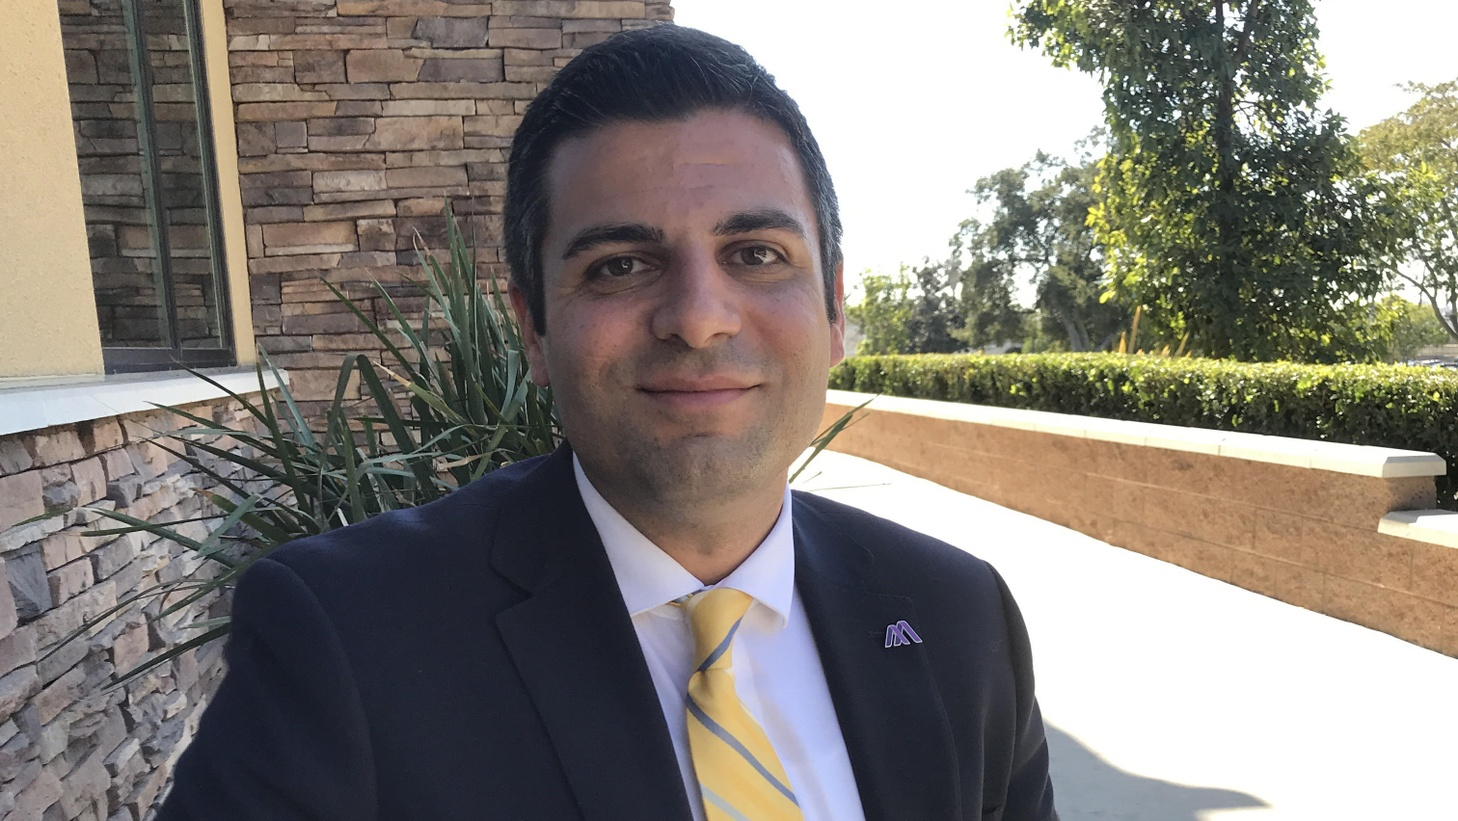 Shant Sahakian, executive director of the forthcoming Armenian American Museum, in Glendale talks about how the Armenian diaspora is reacting to the U.S. House of Representatives vote recognizing the Amenian Genocide.